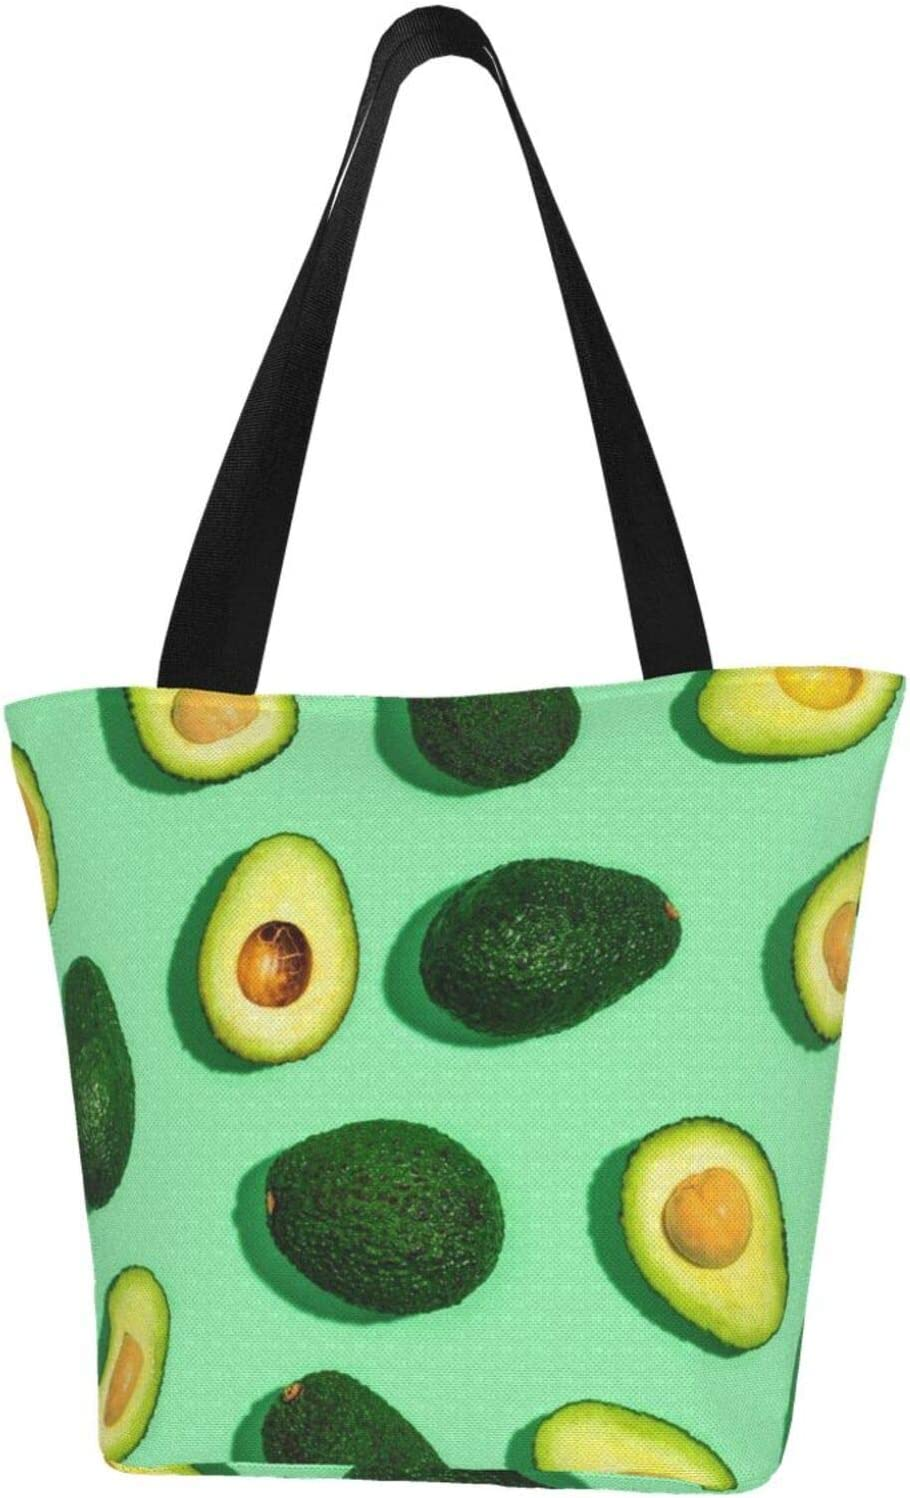 AKLID Vegetables Avocado Pattern Extra Large Can Resistant San Diego Mall lowest price Water